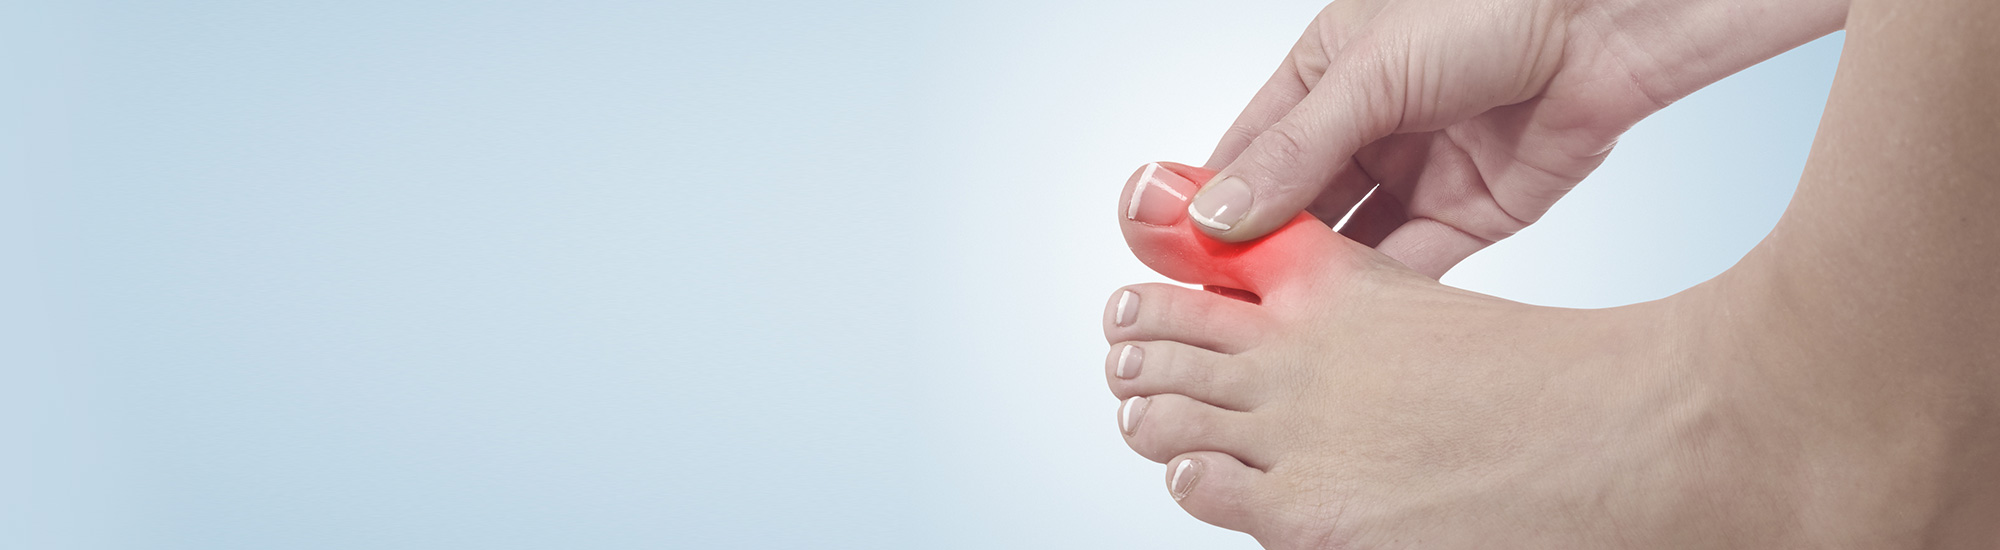 Ayurvedic treatment for Gout References